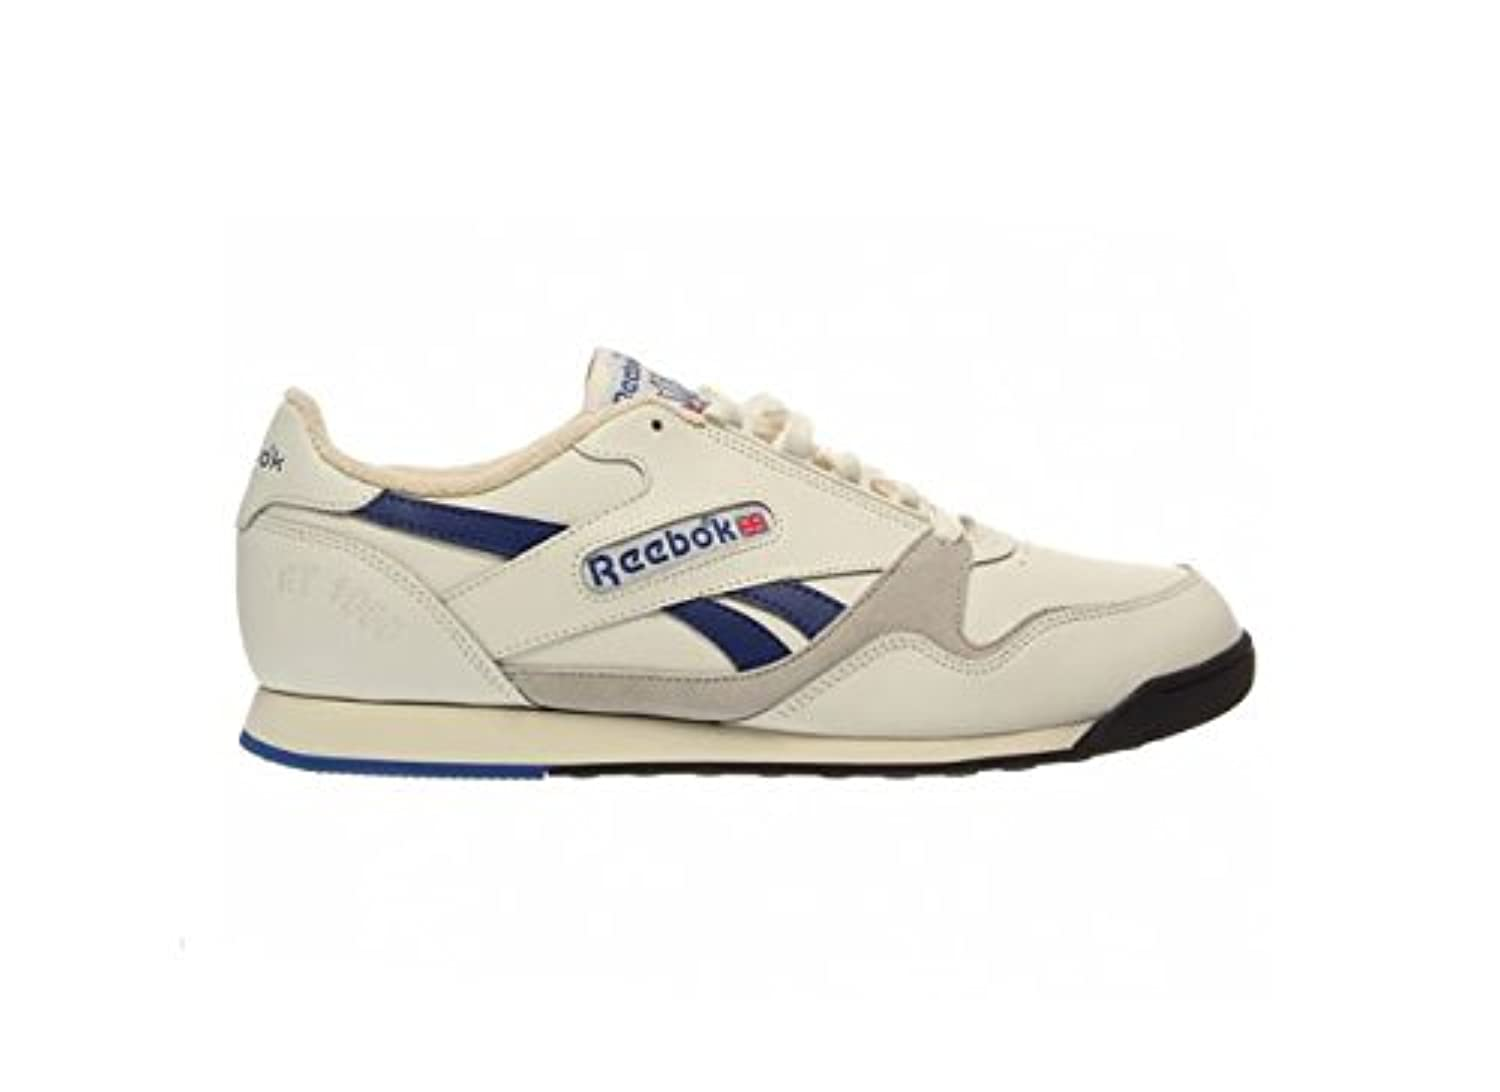 REEBOK RT1000 CHALK BLUE CREAM WHITE BLACK M41438 Active Life Style Shoe 08MEN